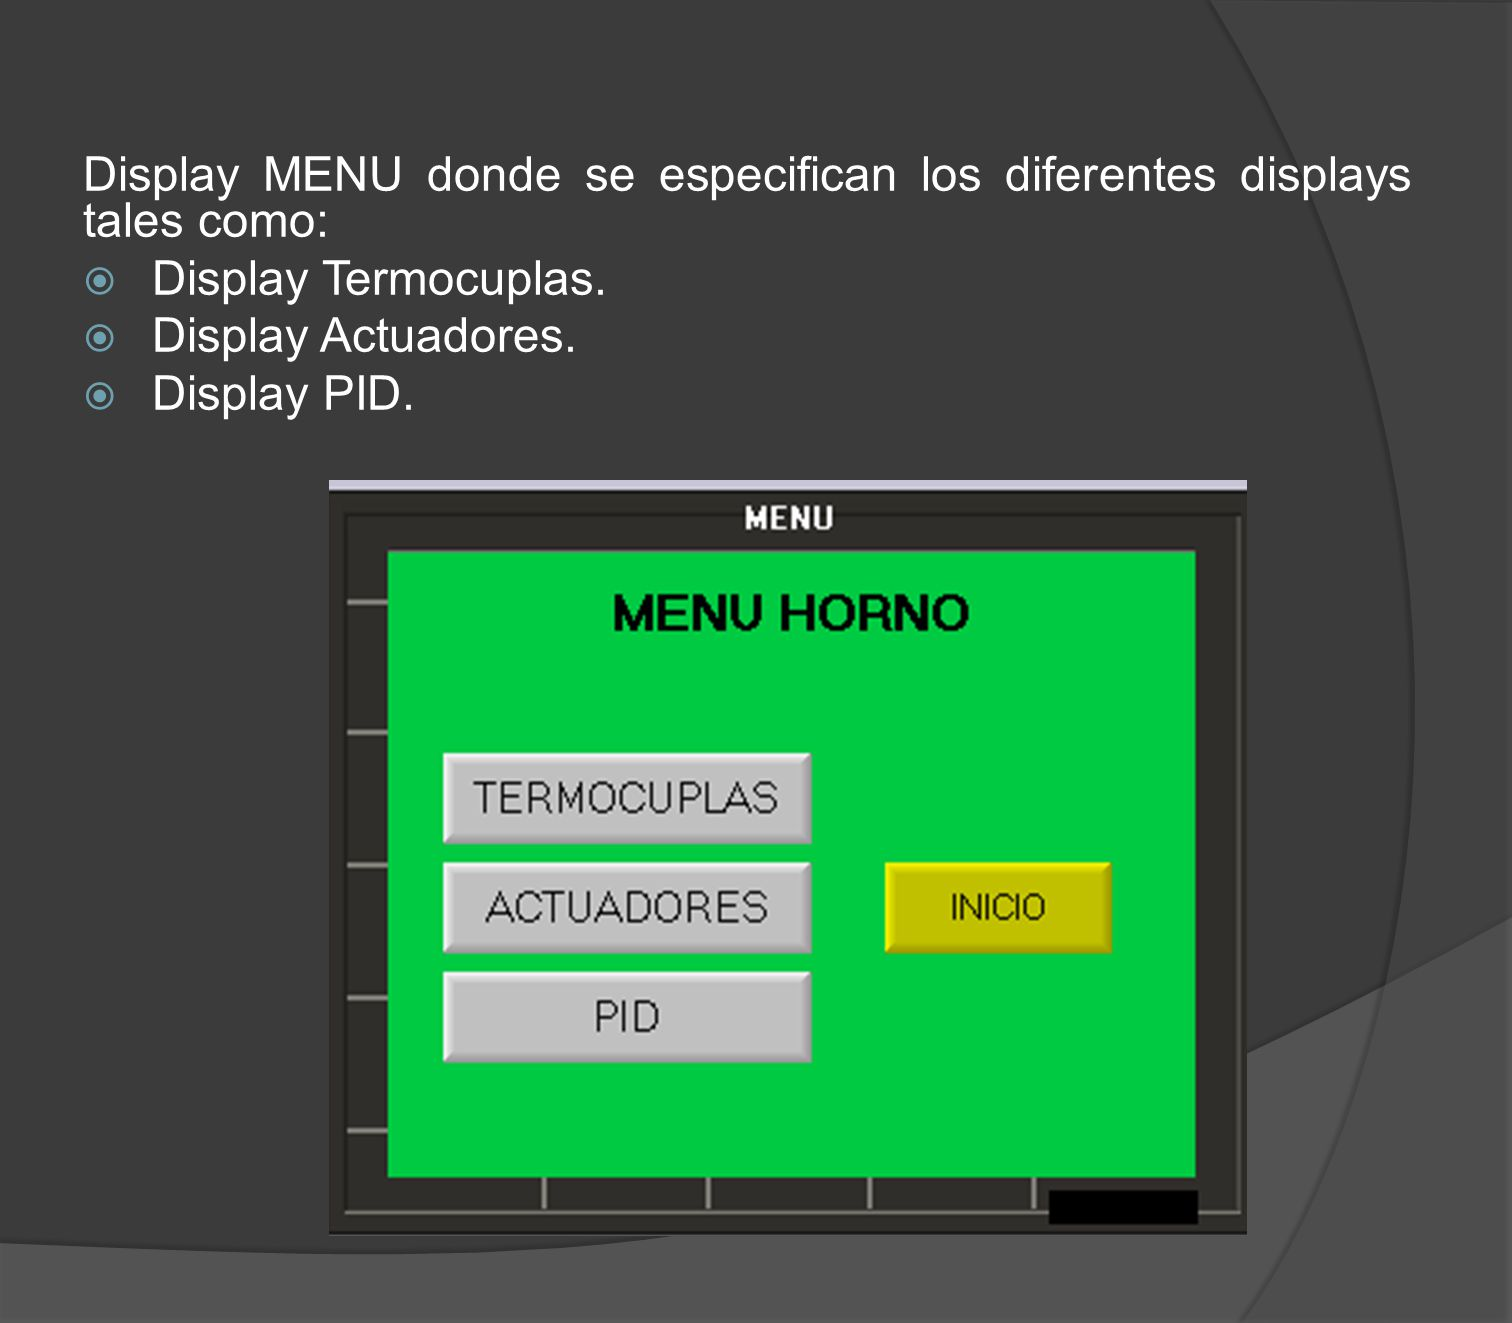 Display MENU donde se especifican los diferentes displays tales como: